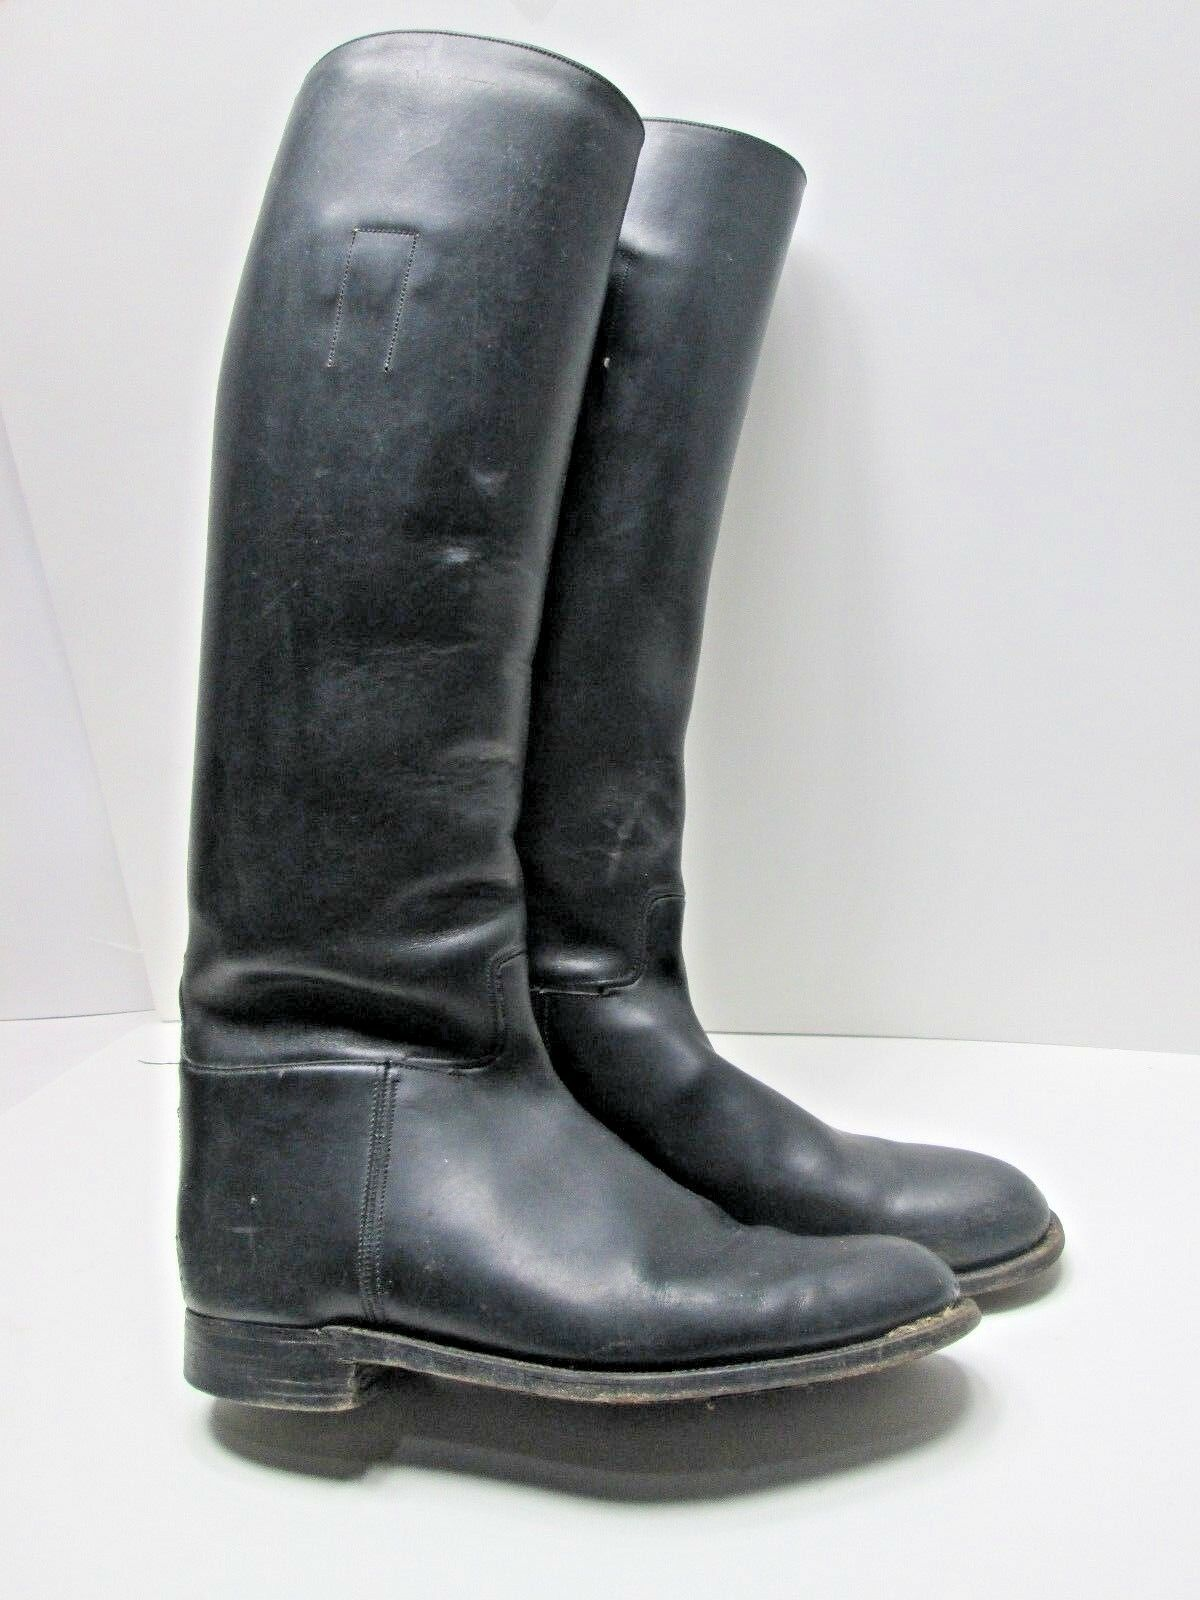 Vintage Handmade USA Womens 8 BLACK TALL EQUESTRIAN Leather RIDING DRESS BOOTS